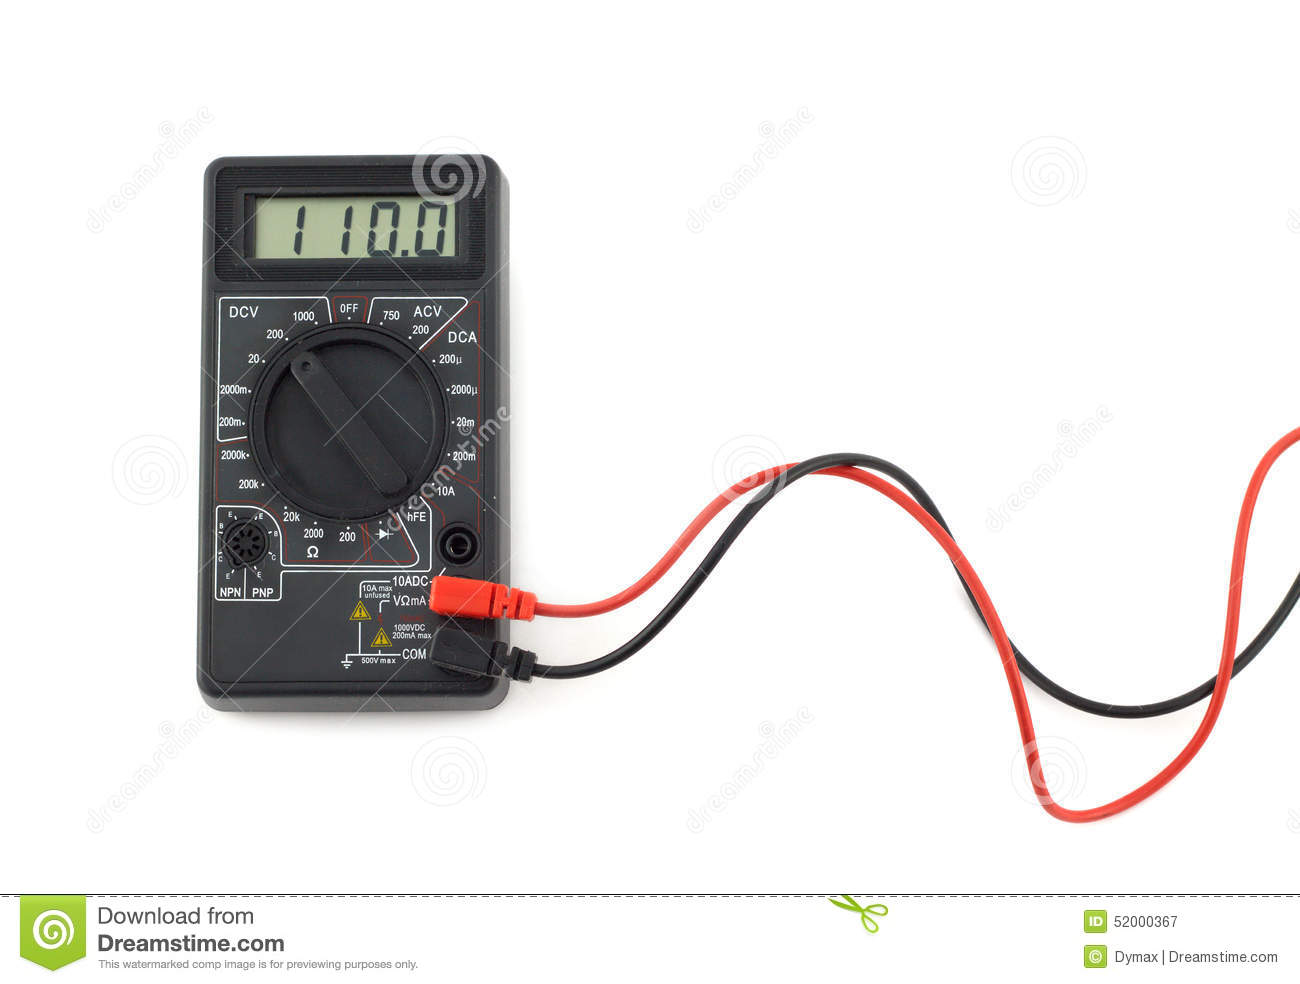 hight resolution of digital multimeter with red and black wires shows 110 volts on lcd display